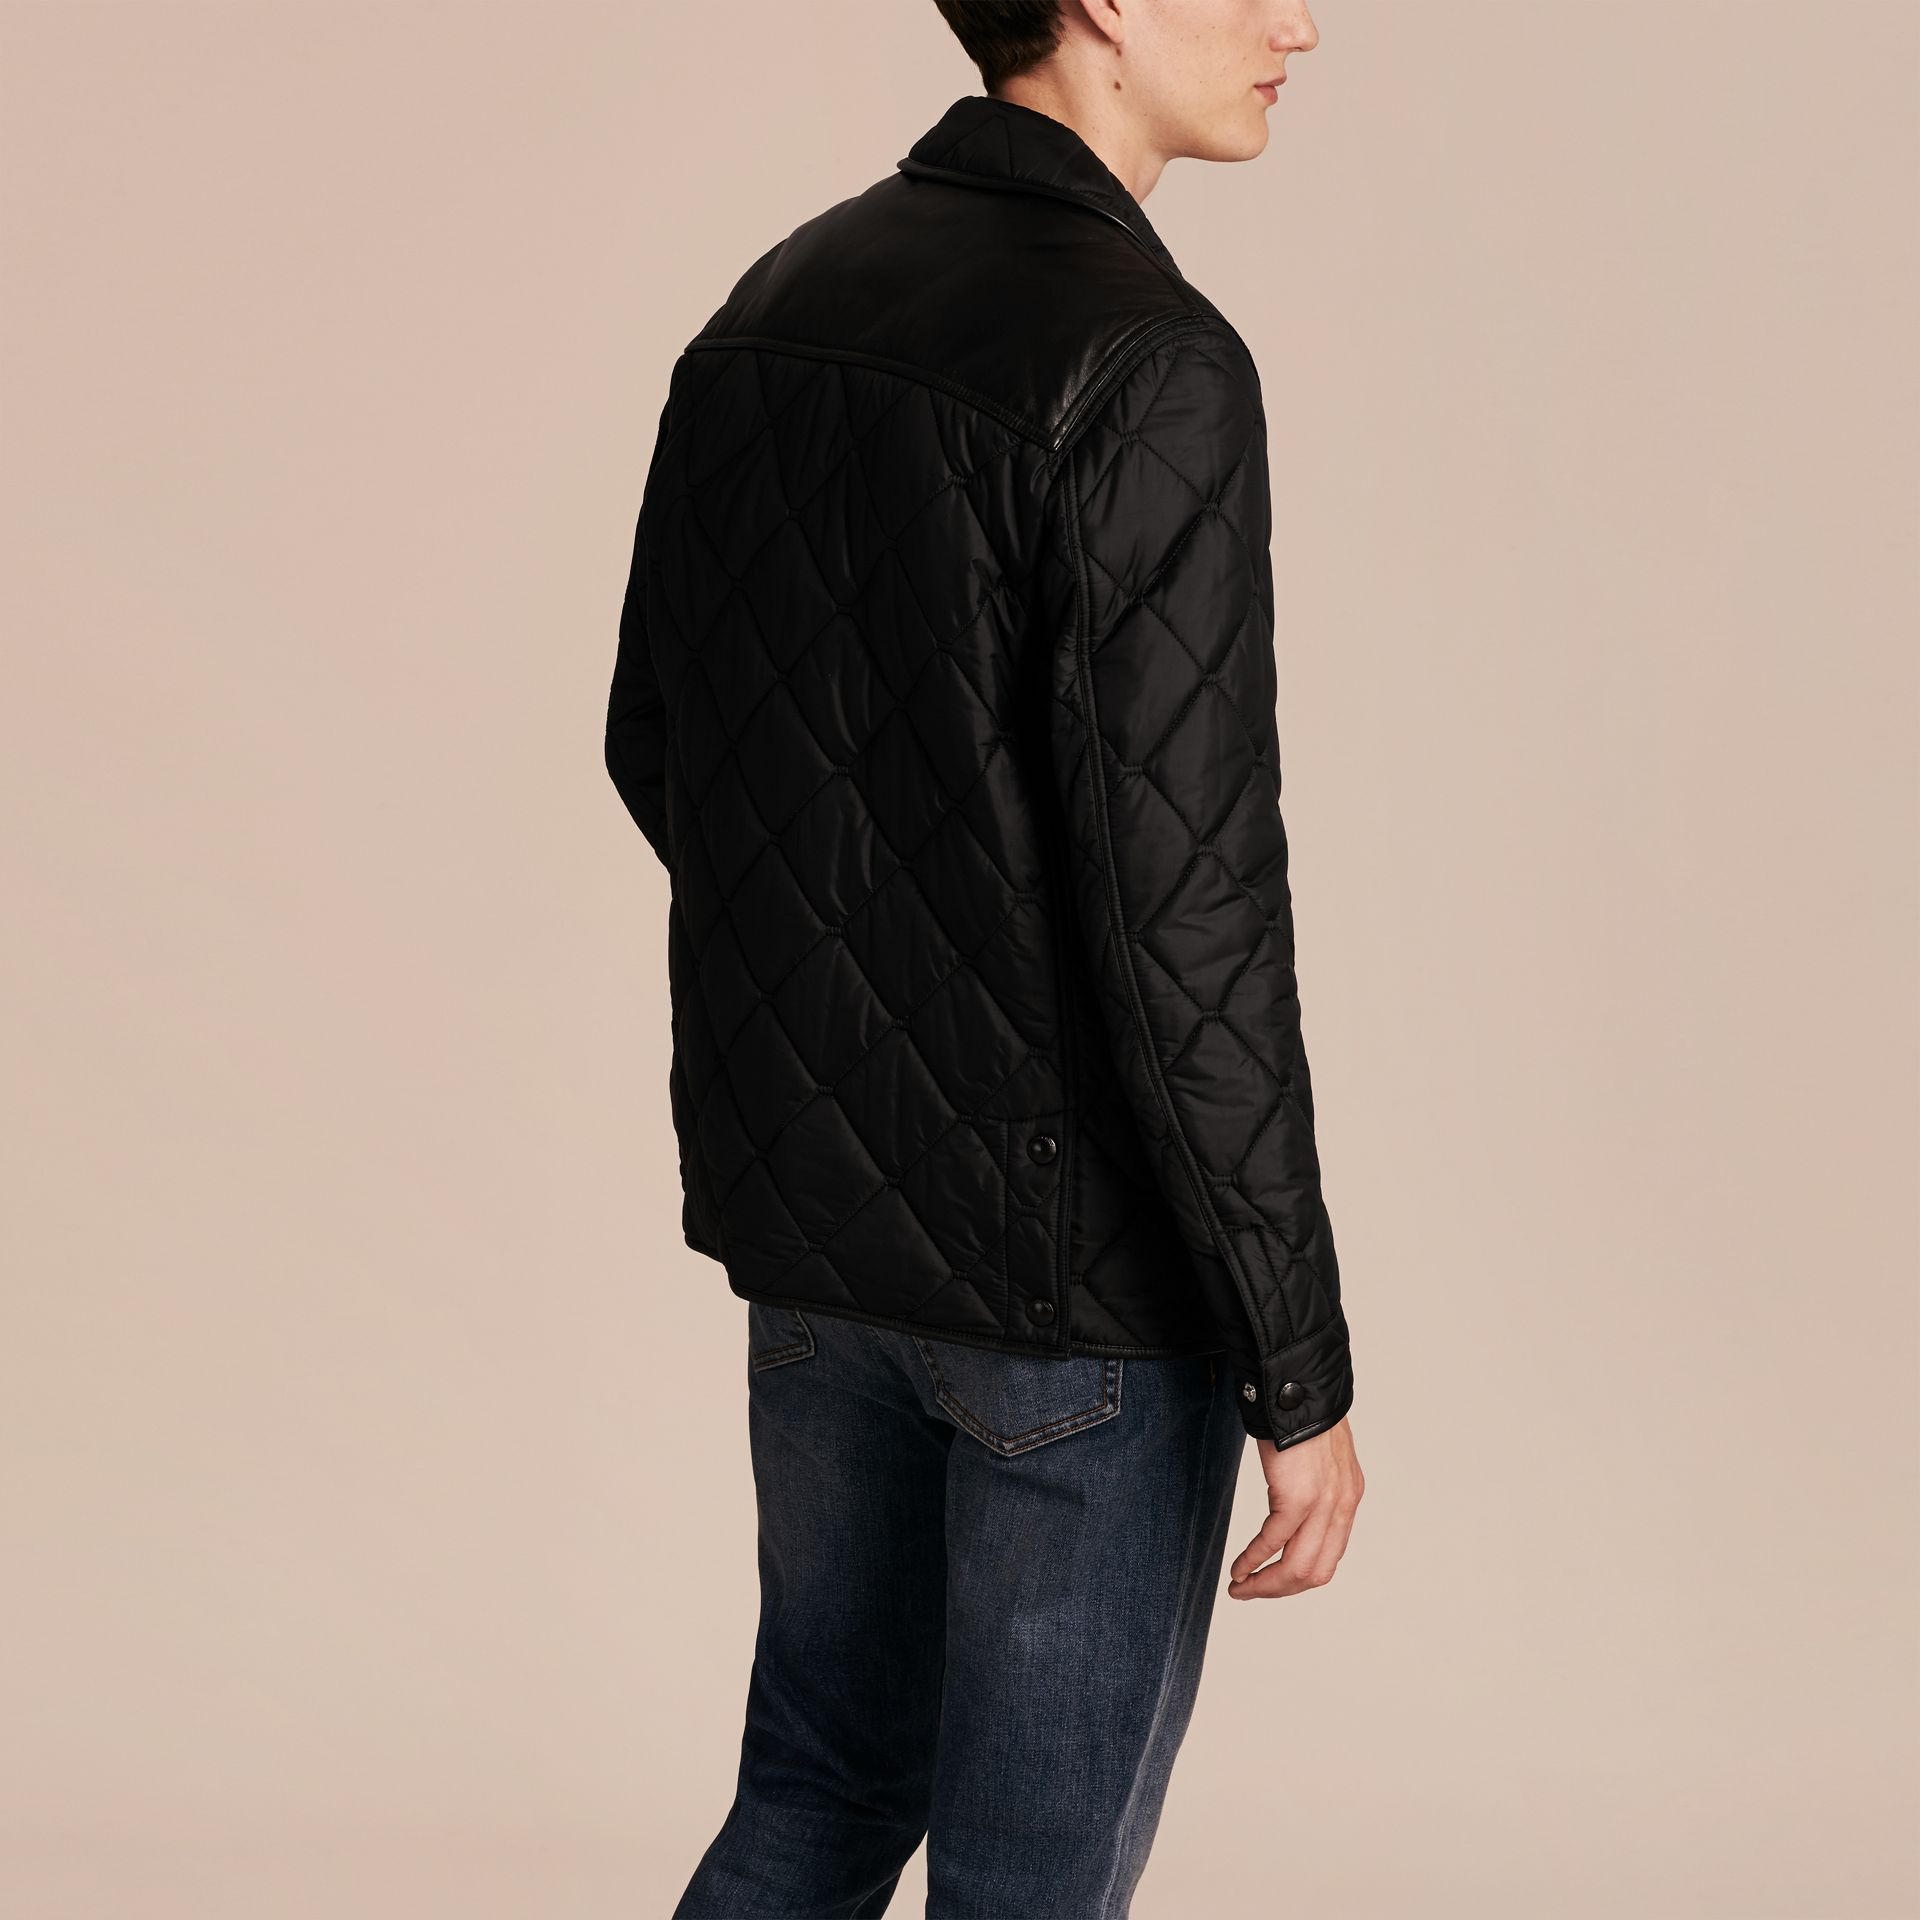 Black Lambskin Detail Field Jacket Black - gallery image 3